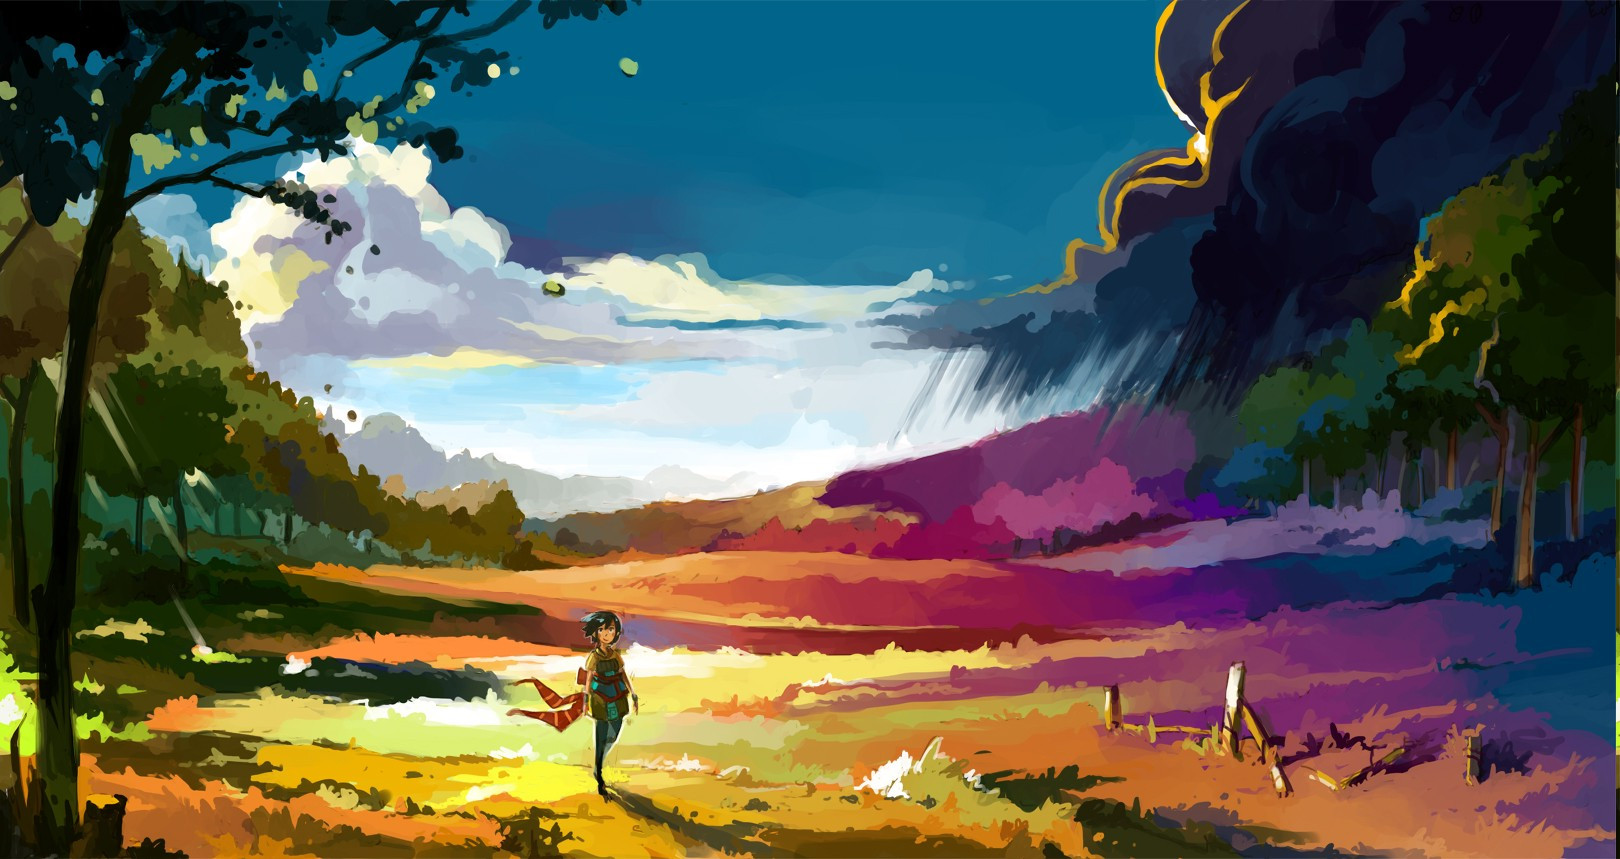 Best ideas about Anime Landscape Wallpaper . Save or Pin anime Landscape Colorful Wallpapers HD Desktop and Now.